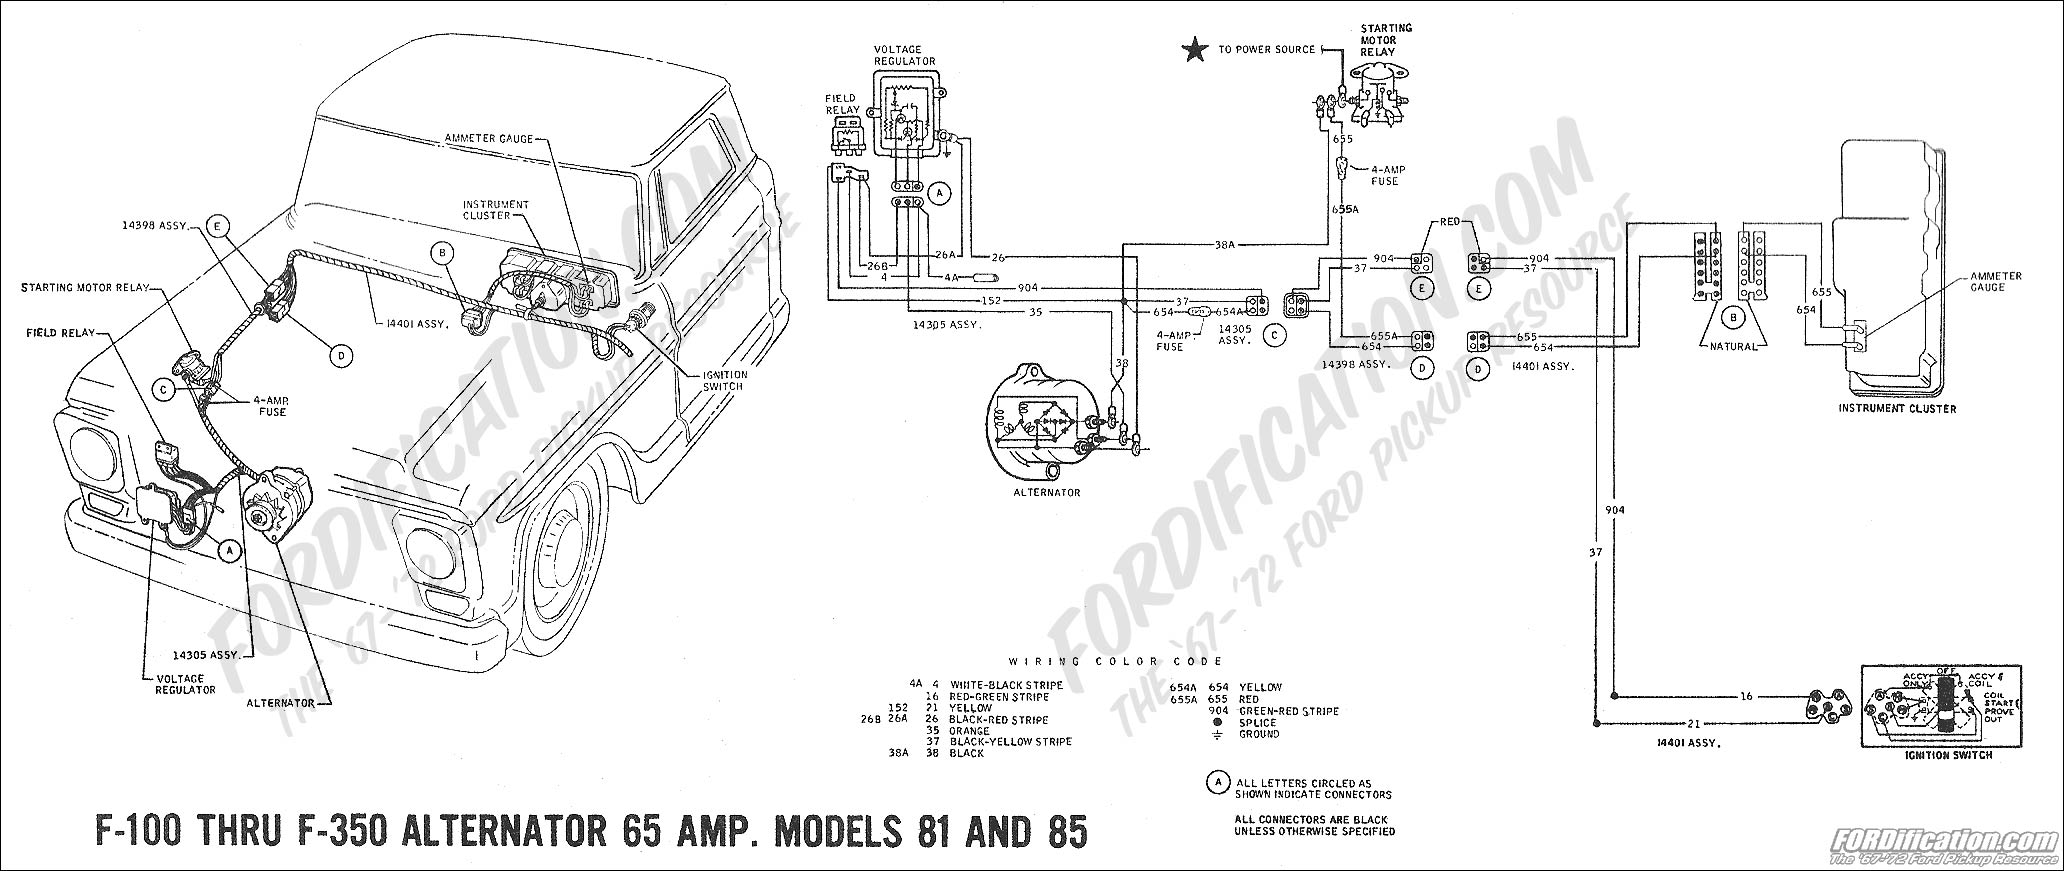 1984 1991 F150f250 Steering Column Swap together with Borg Warner T5 Transmission Parts furthermore Discussion T10175 ds721151 also Ford F 250 Front End Parts Diagram Dfac7e46c2882956 in addition P 0900c1528008200e. on 1980 chevy truck steering column diagram